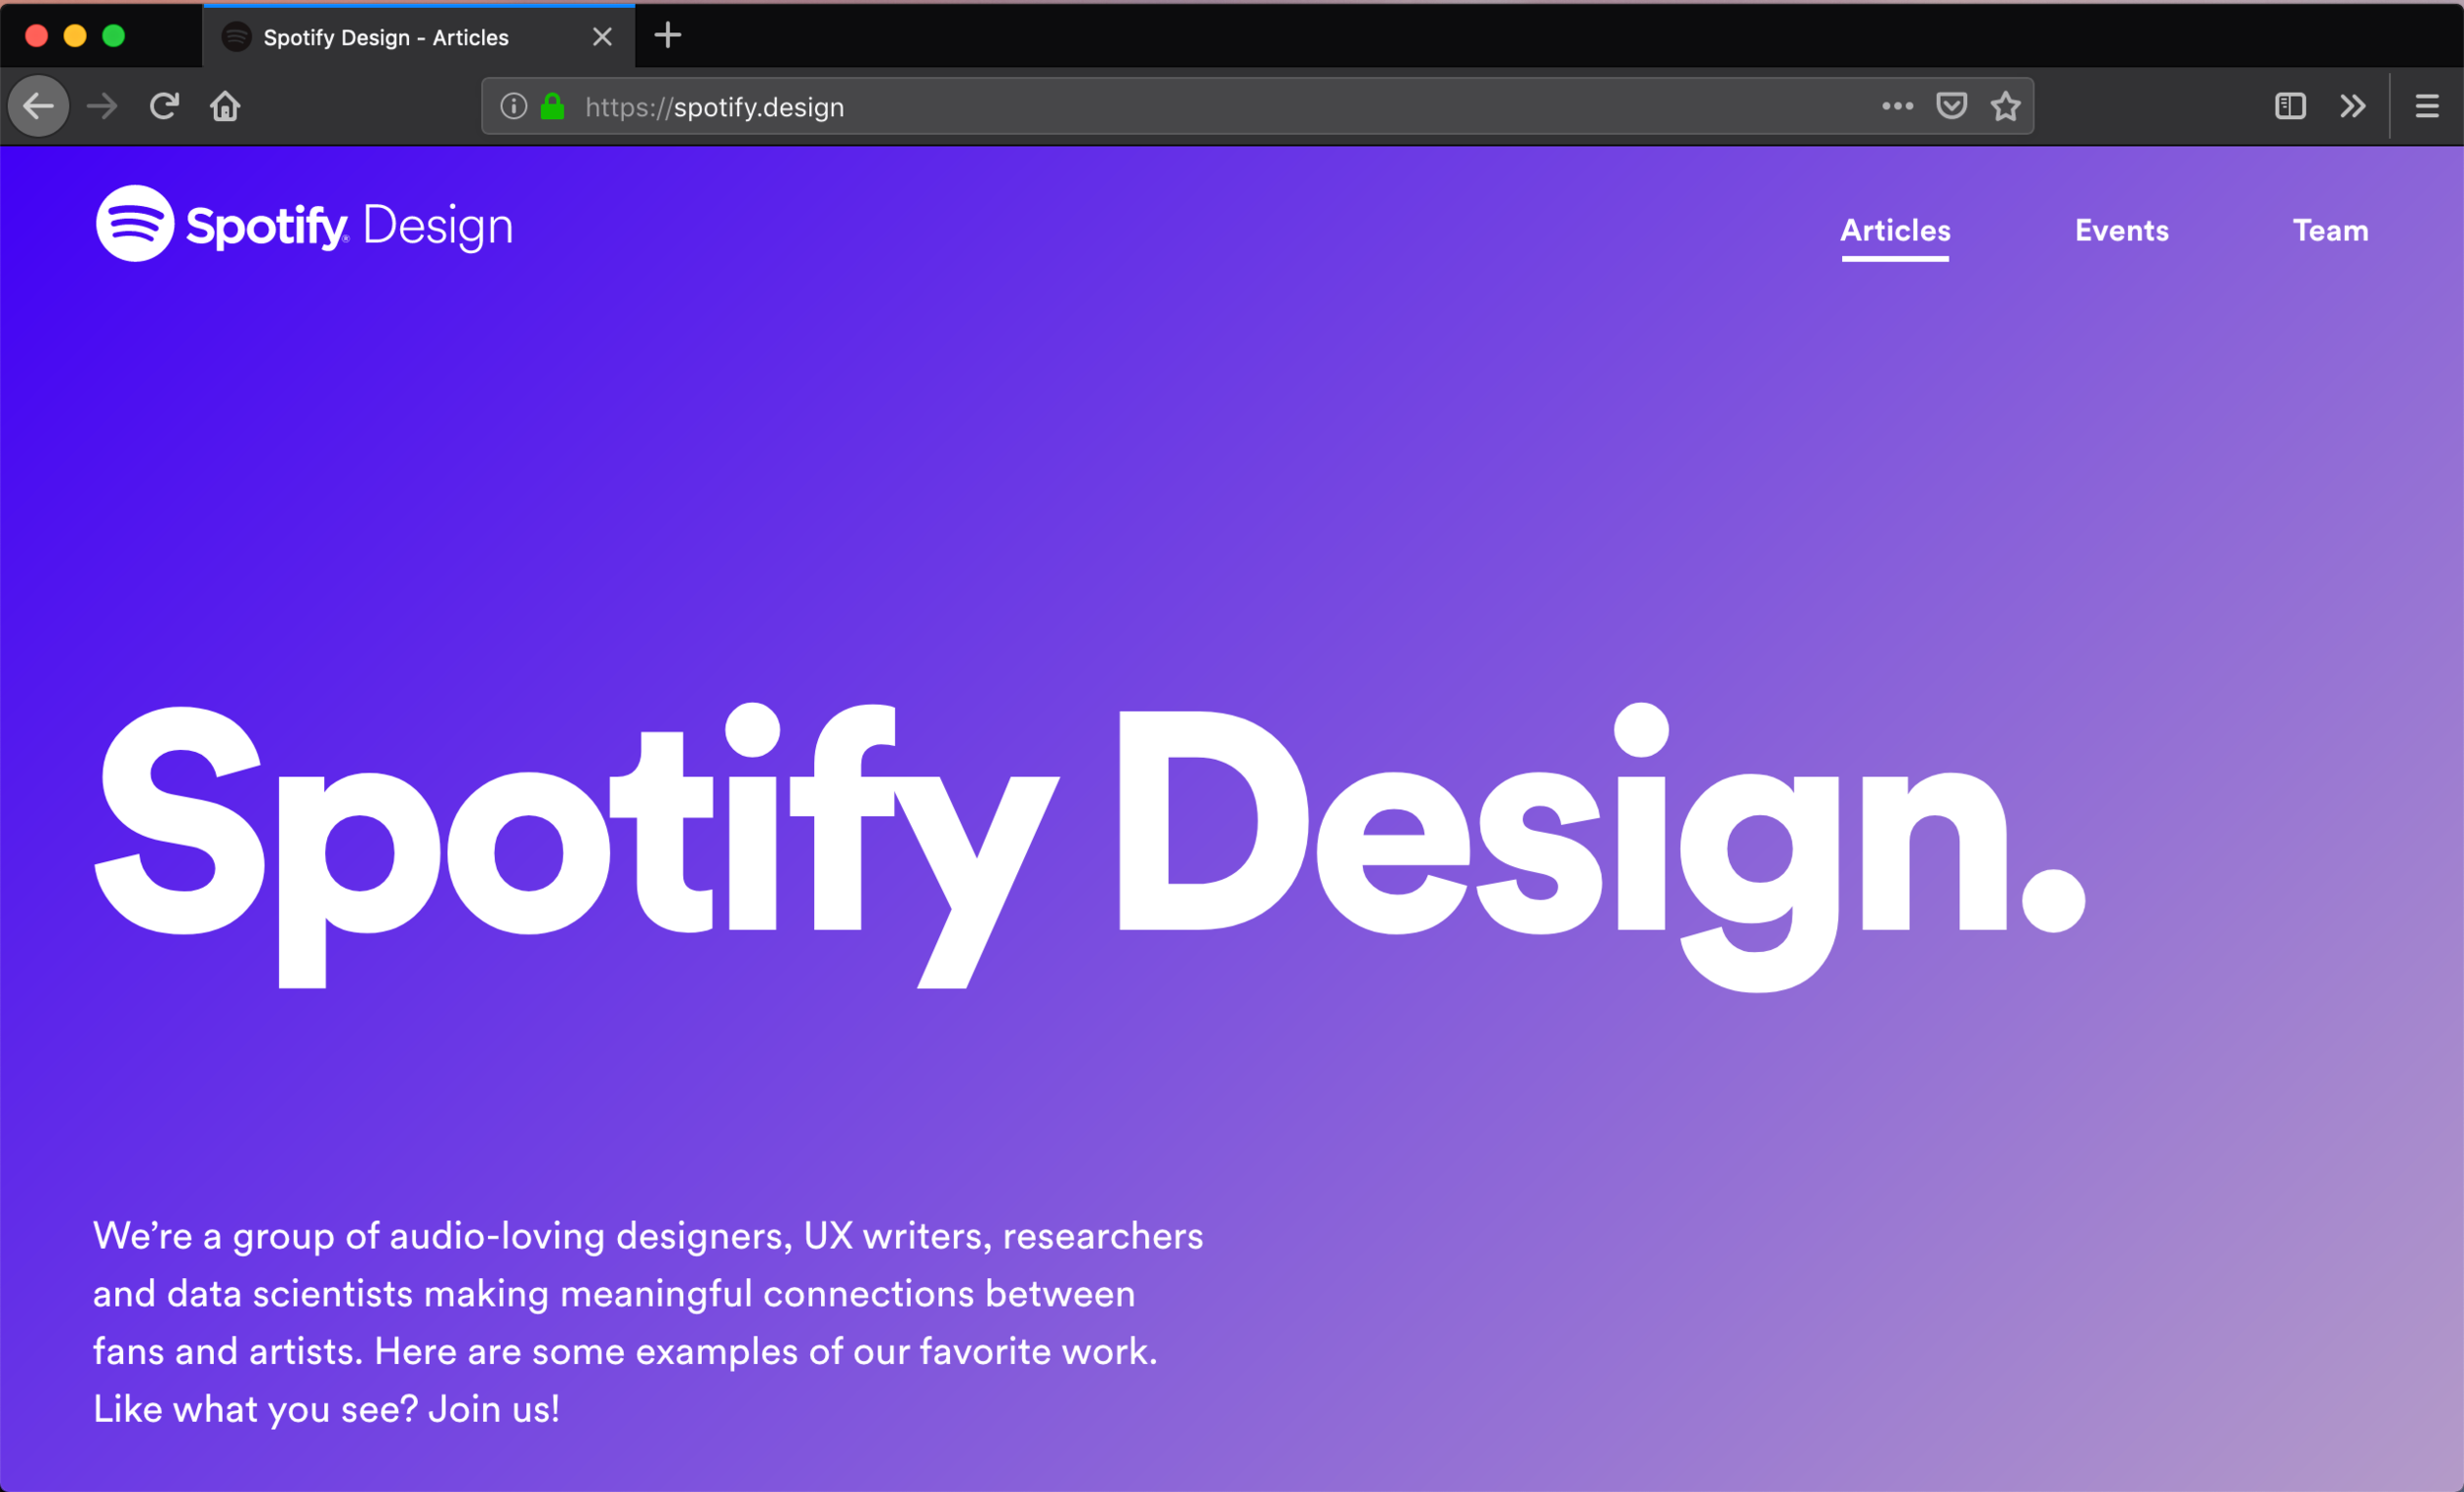 The new homepage to spotify.design